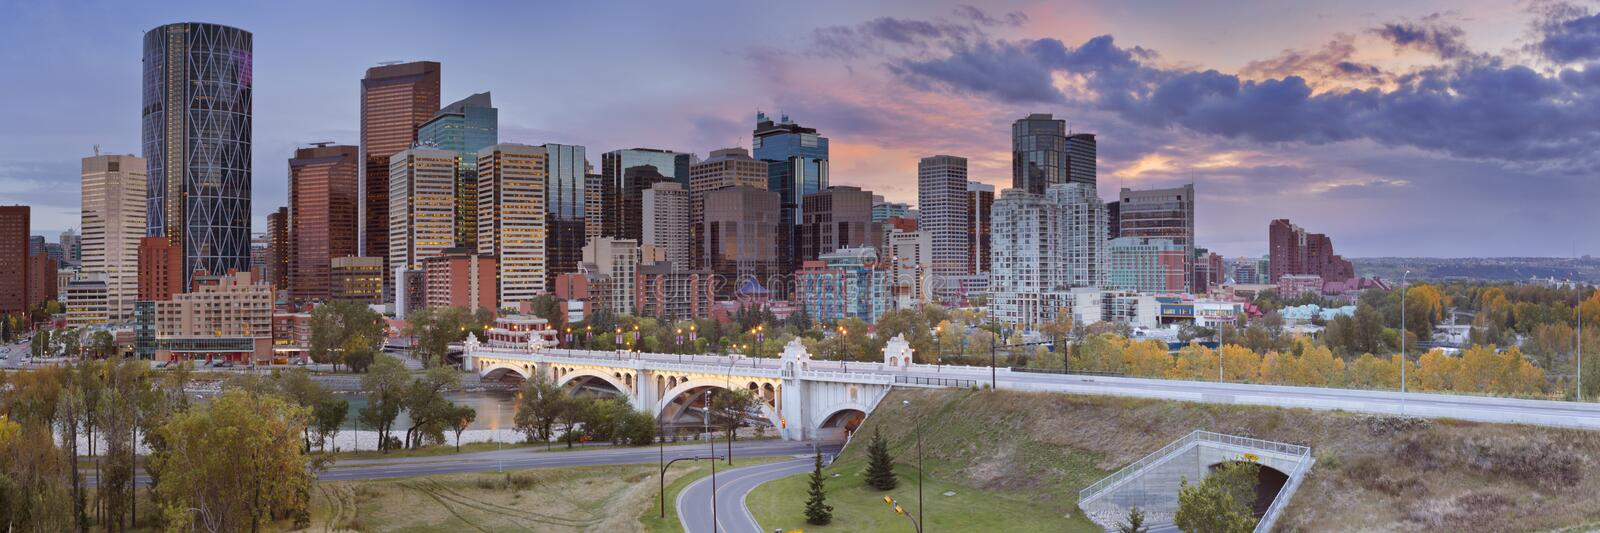 Skyline of Calgary, Alberta, Canada at sunset. The skyline of downtown Calgary, Alberta, Canada, photographed at sunset royalty free stock photos